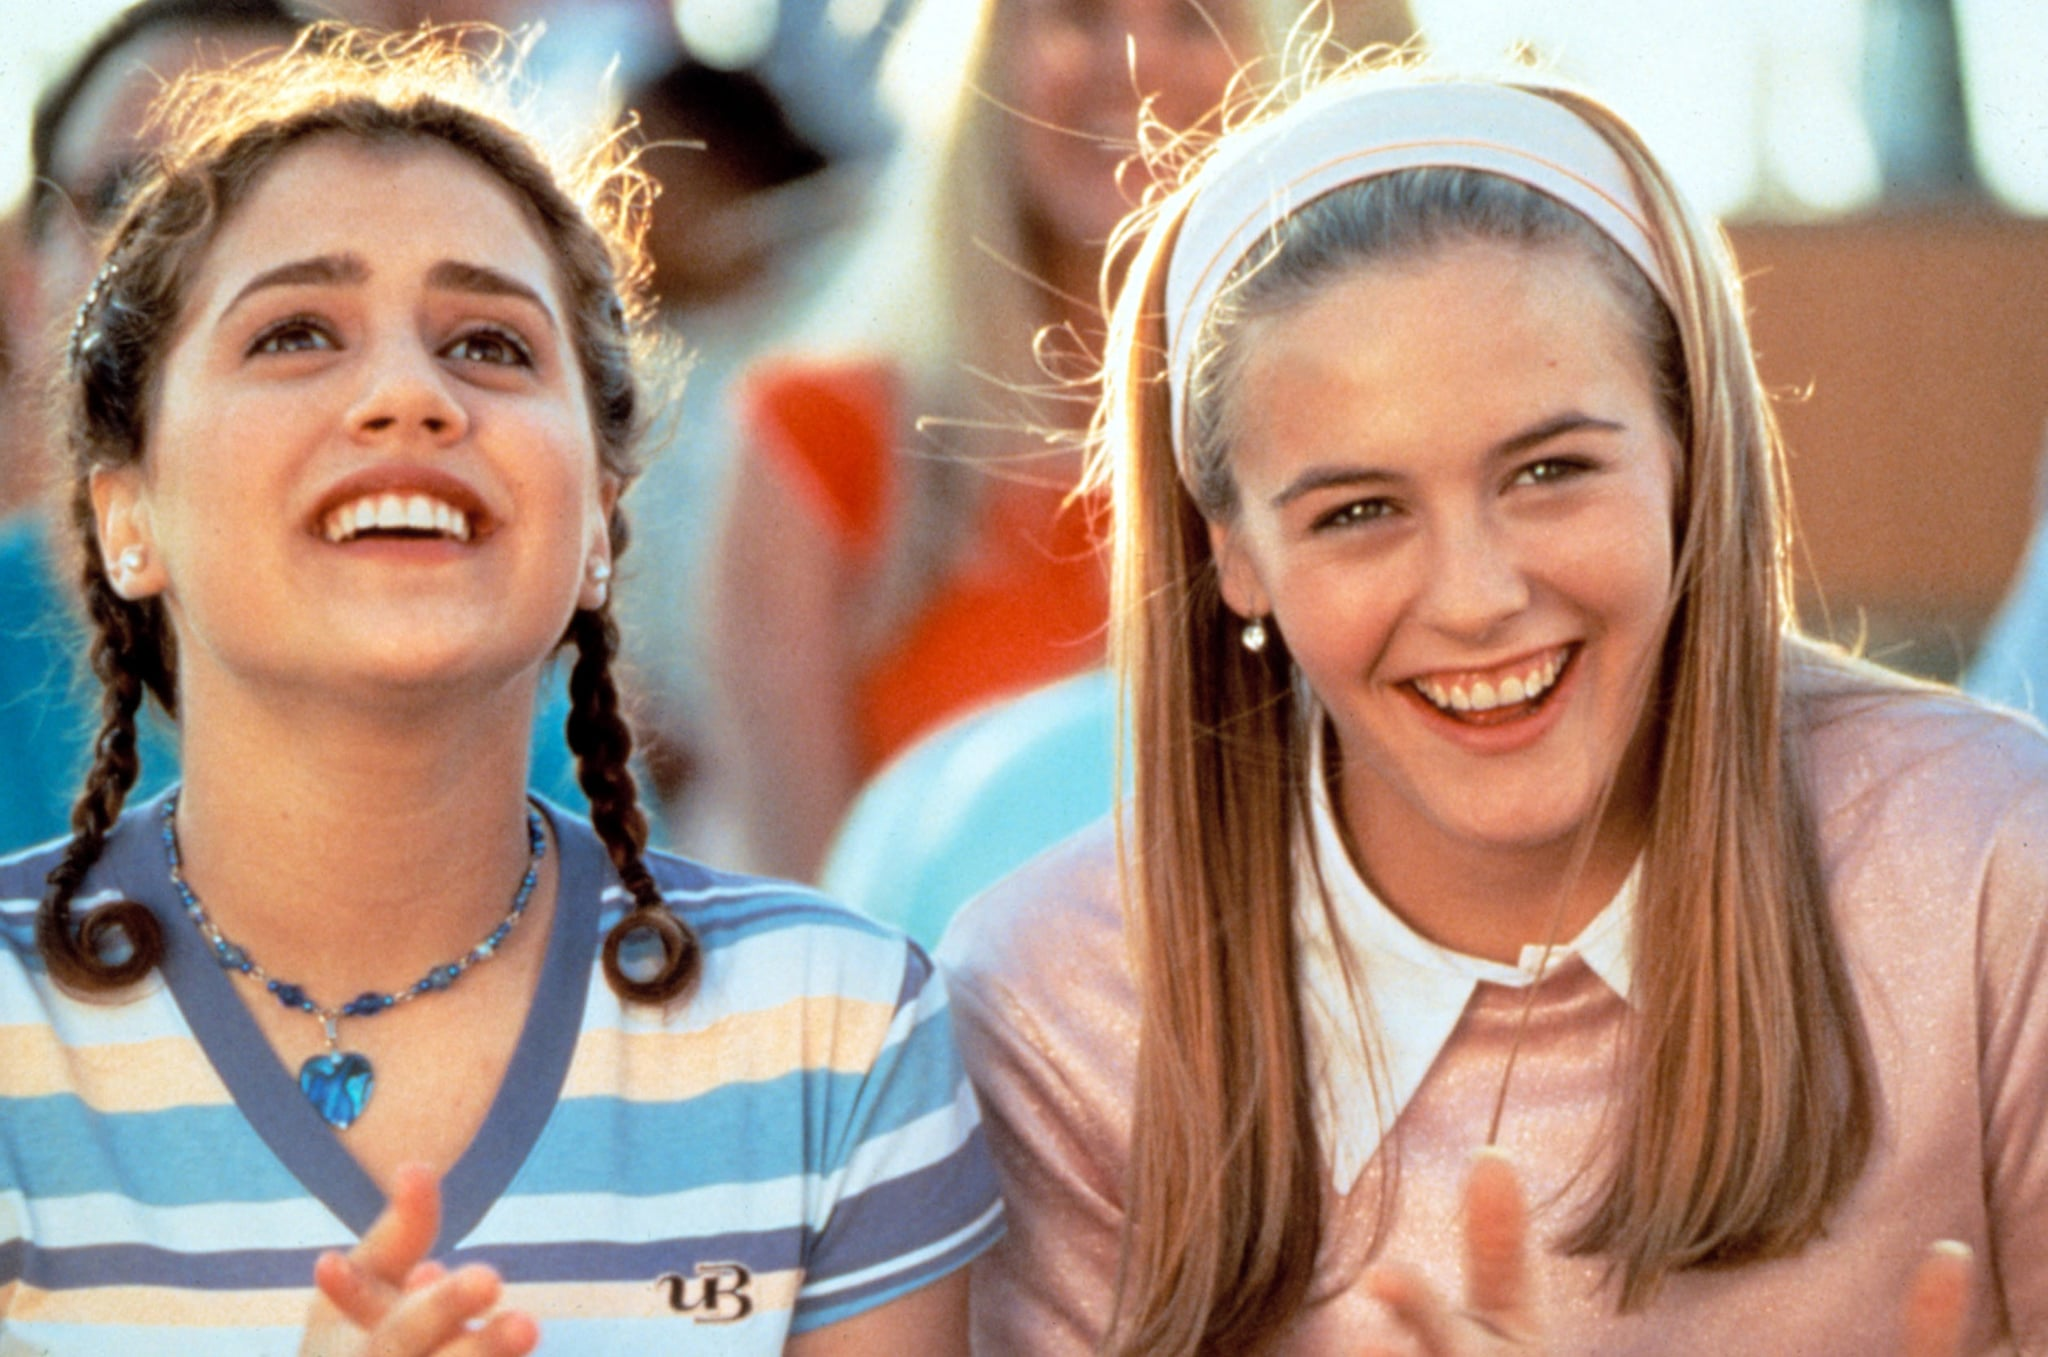 CLUELESS, Alicia Silverston, Brittany Murphy, 1995.